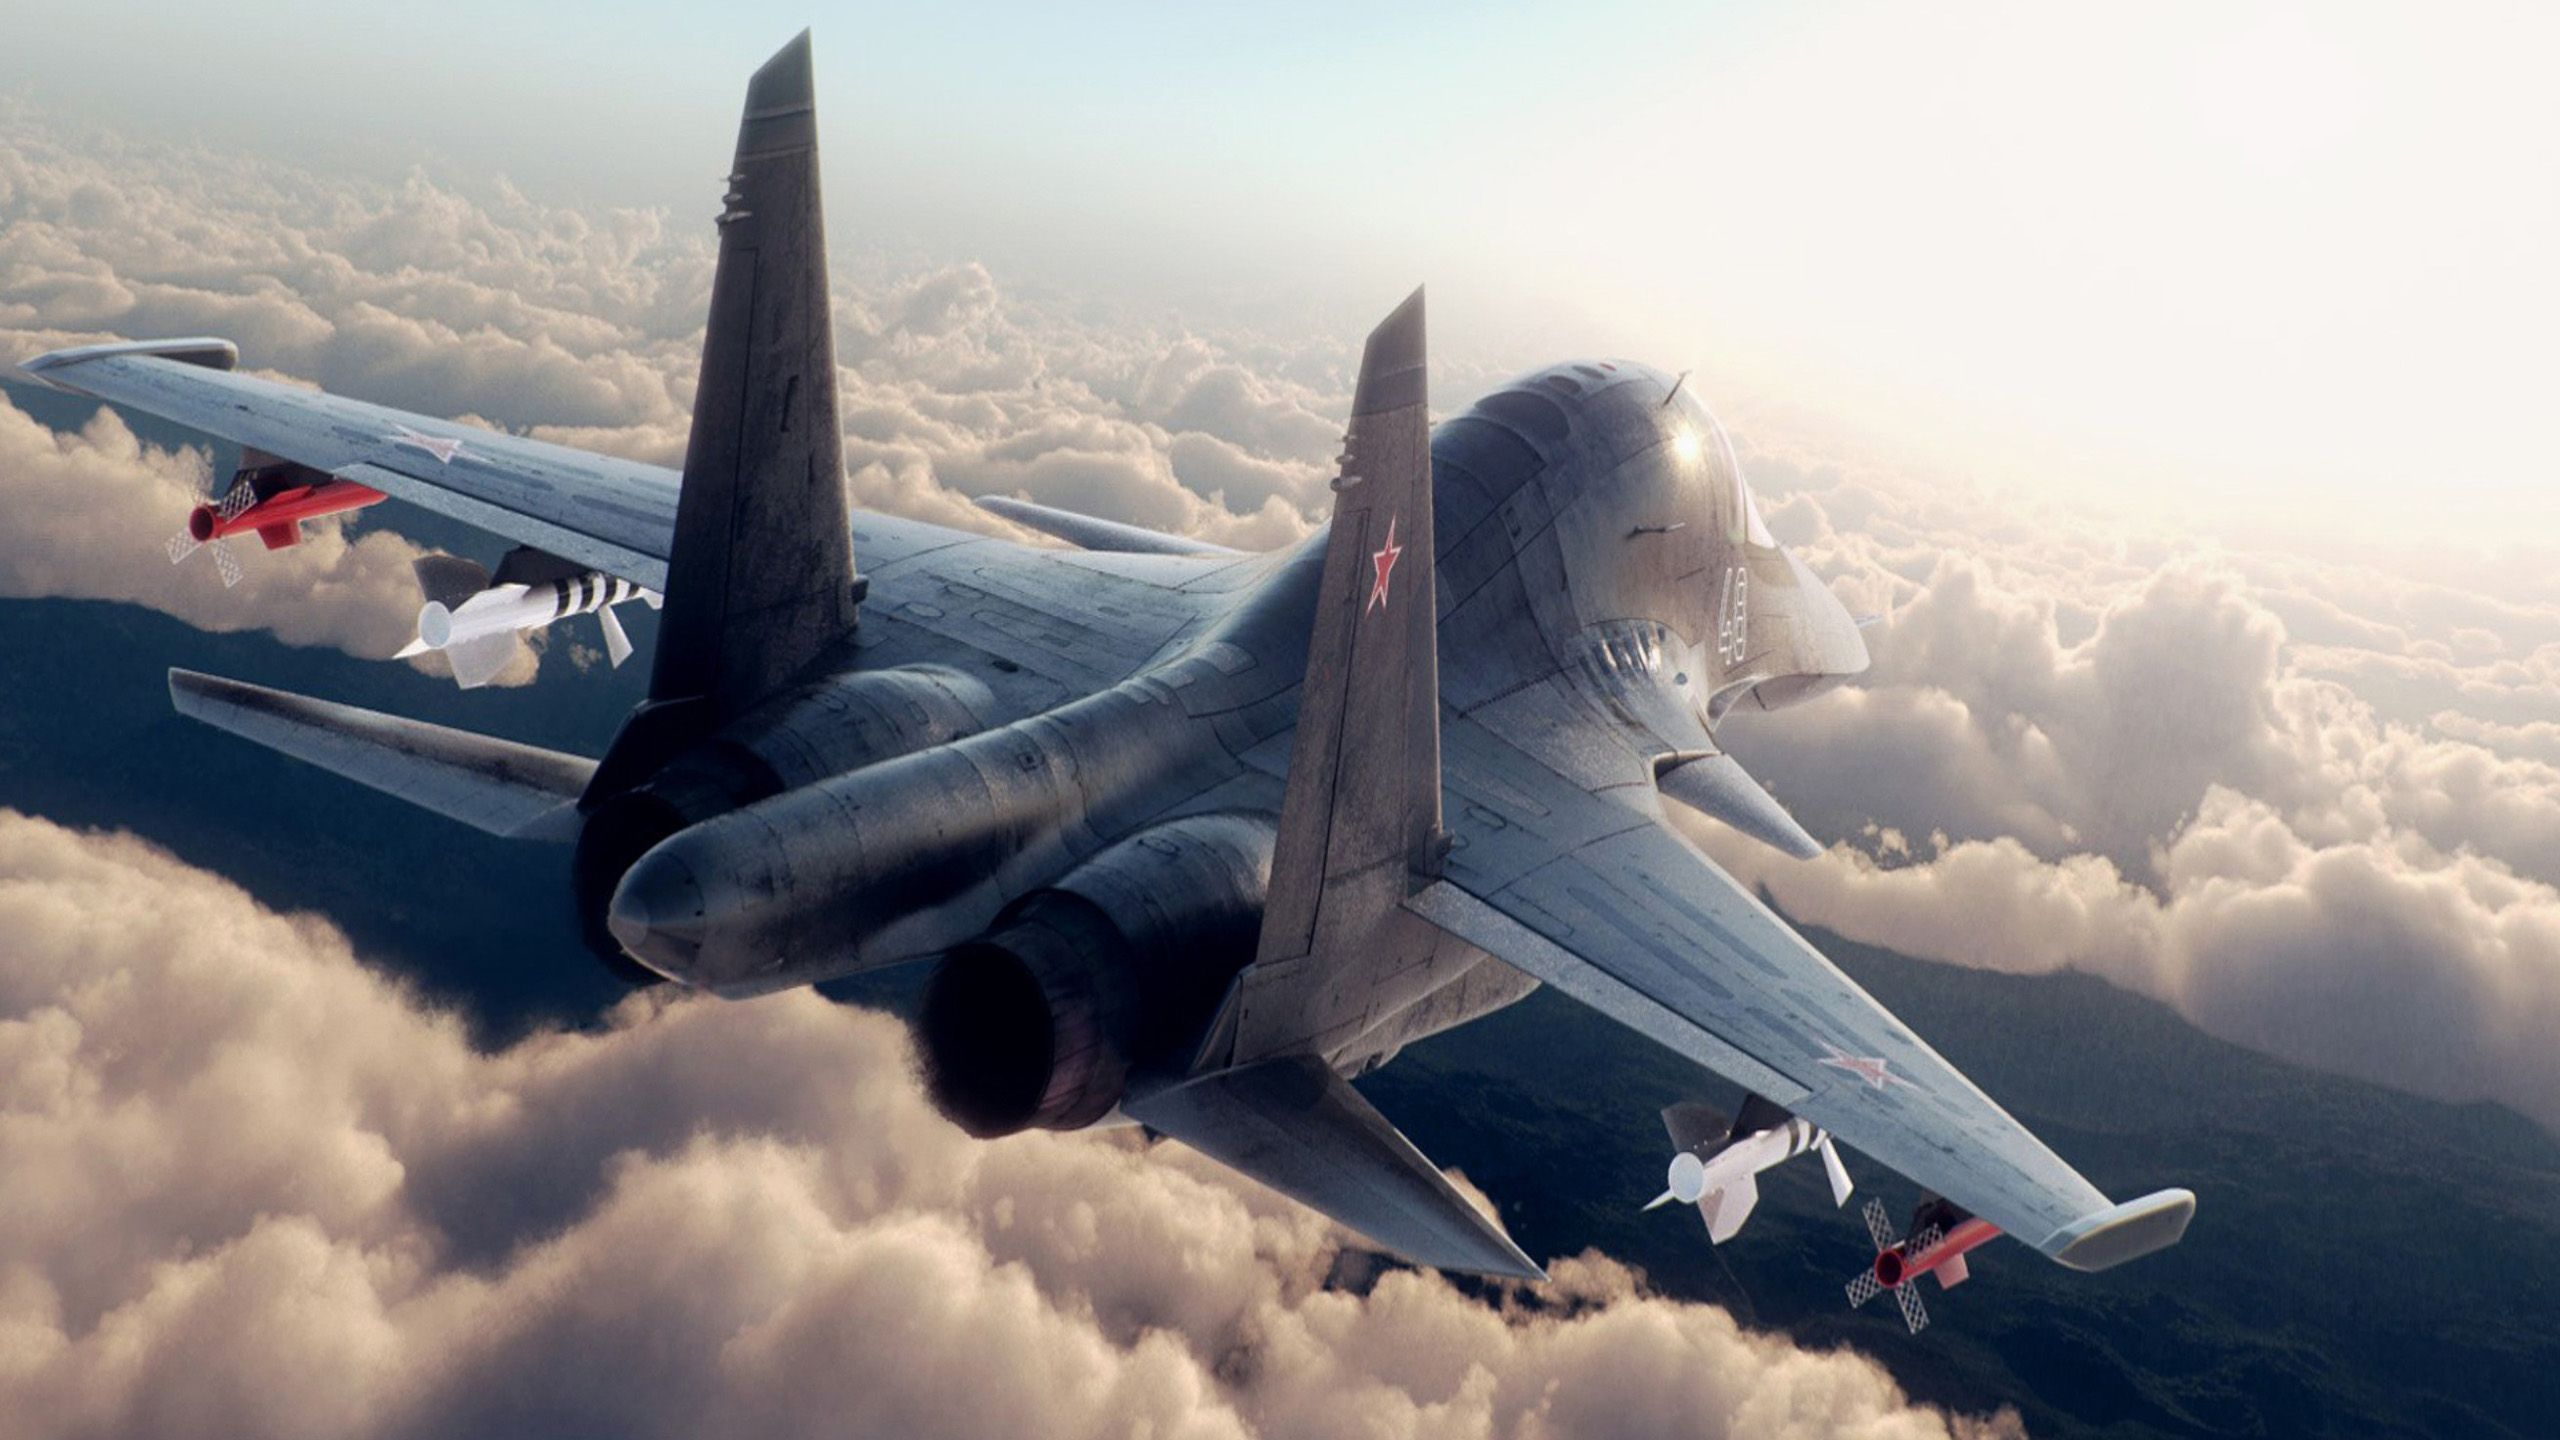 military aircraft wallpapers - wallpaper cave | free wallpapers